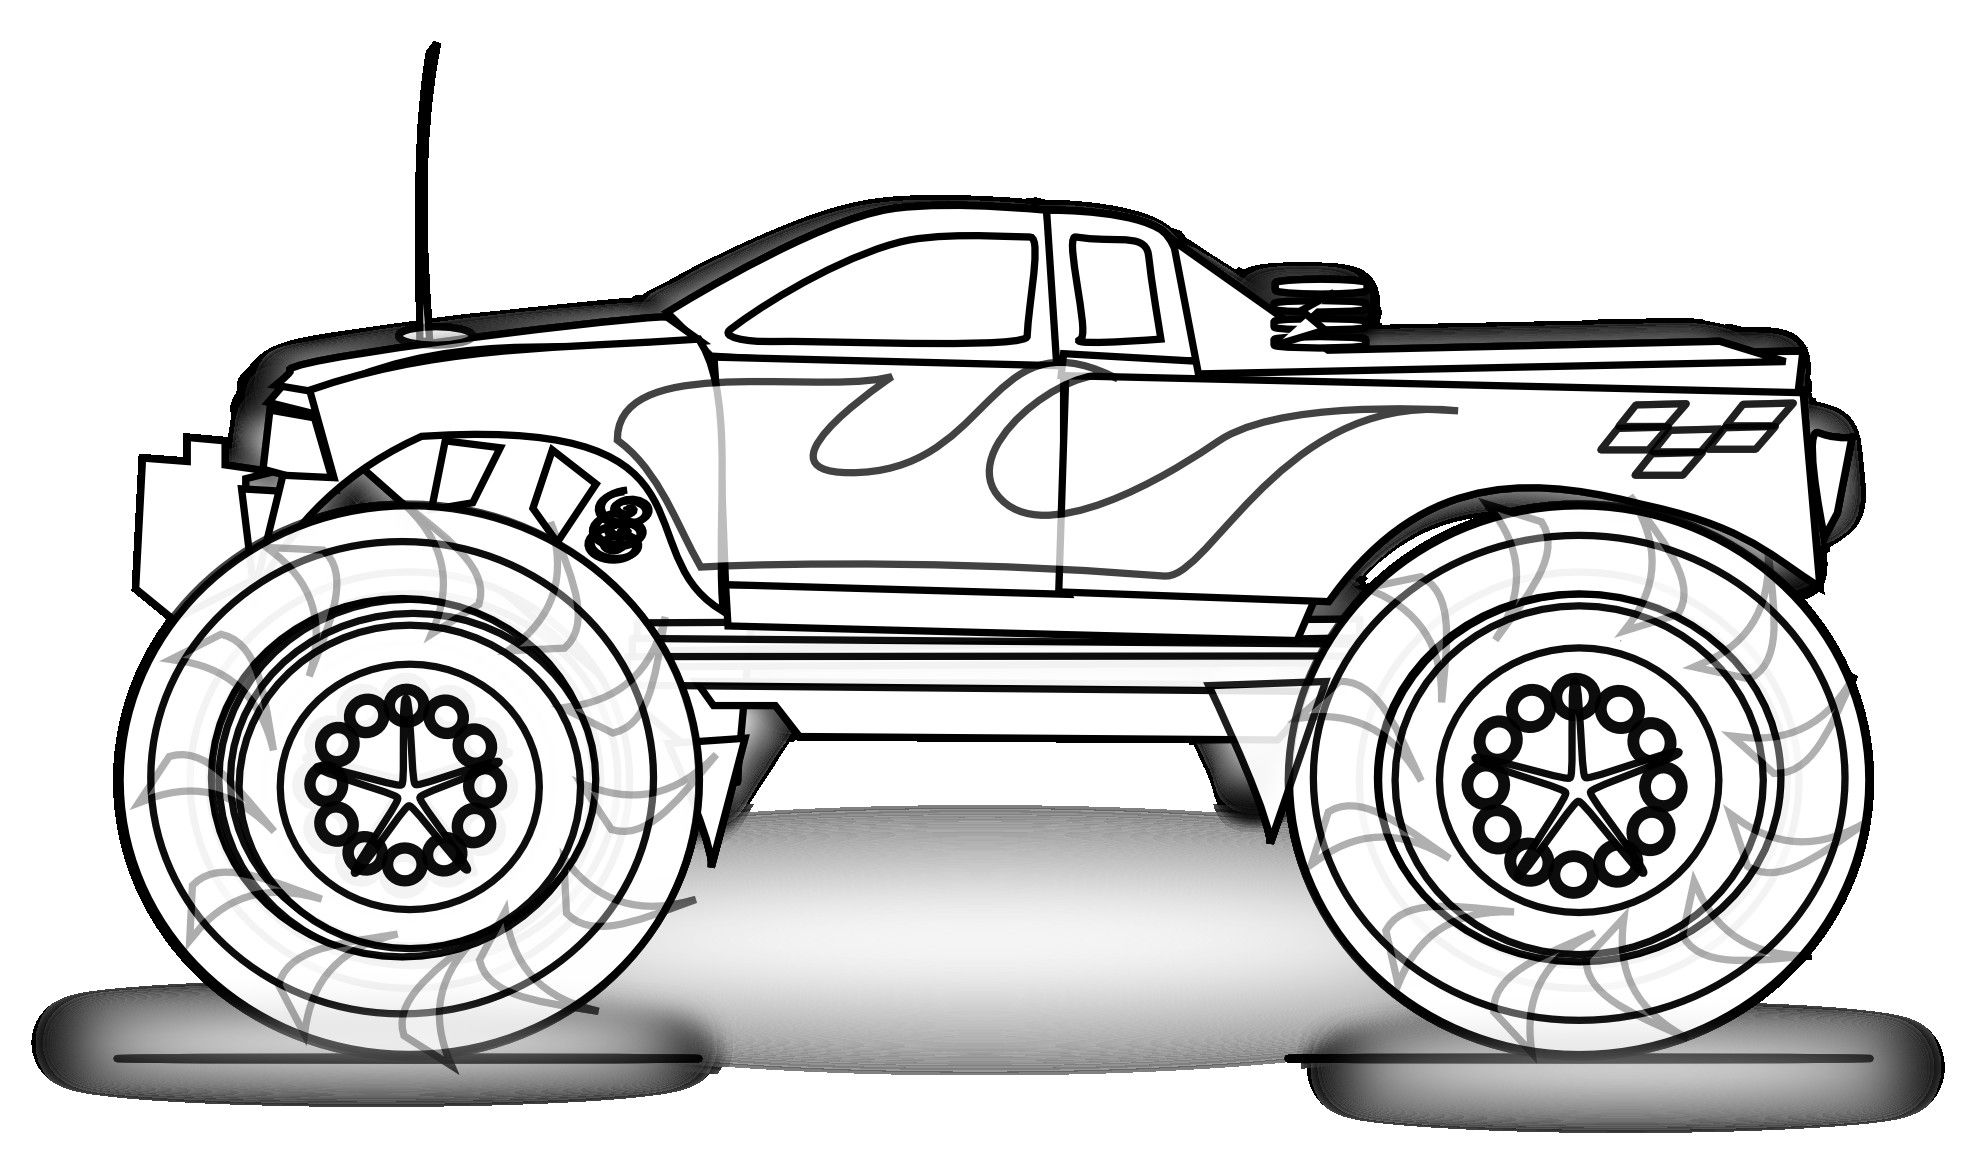 10 Images Of Truck Coloring Pages For Adults Coloring Pages Monster Truck Coloring Pages Race Car Coloring Pages Coloring Pages For Boys [ 1170 x 1969 Pixel ]